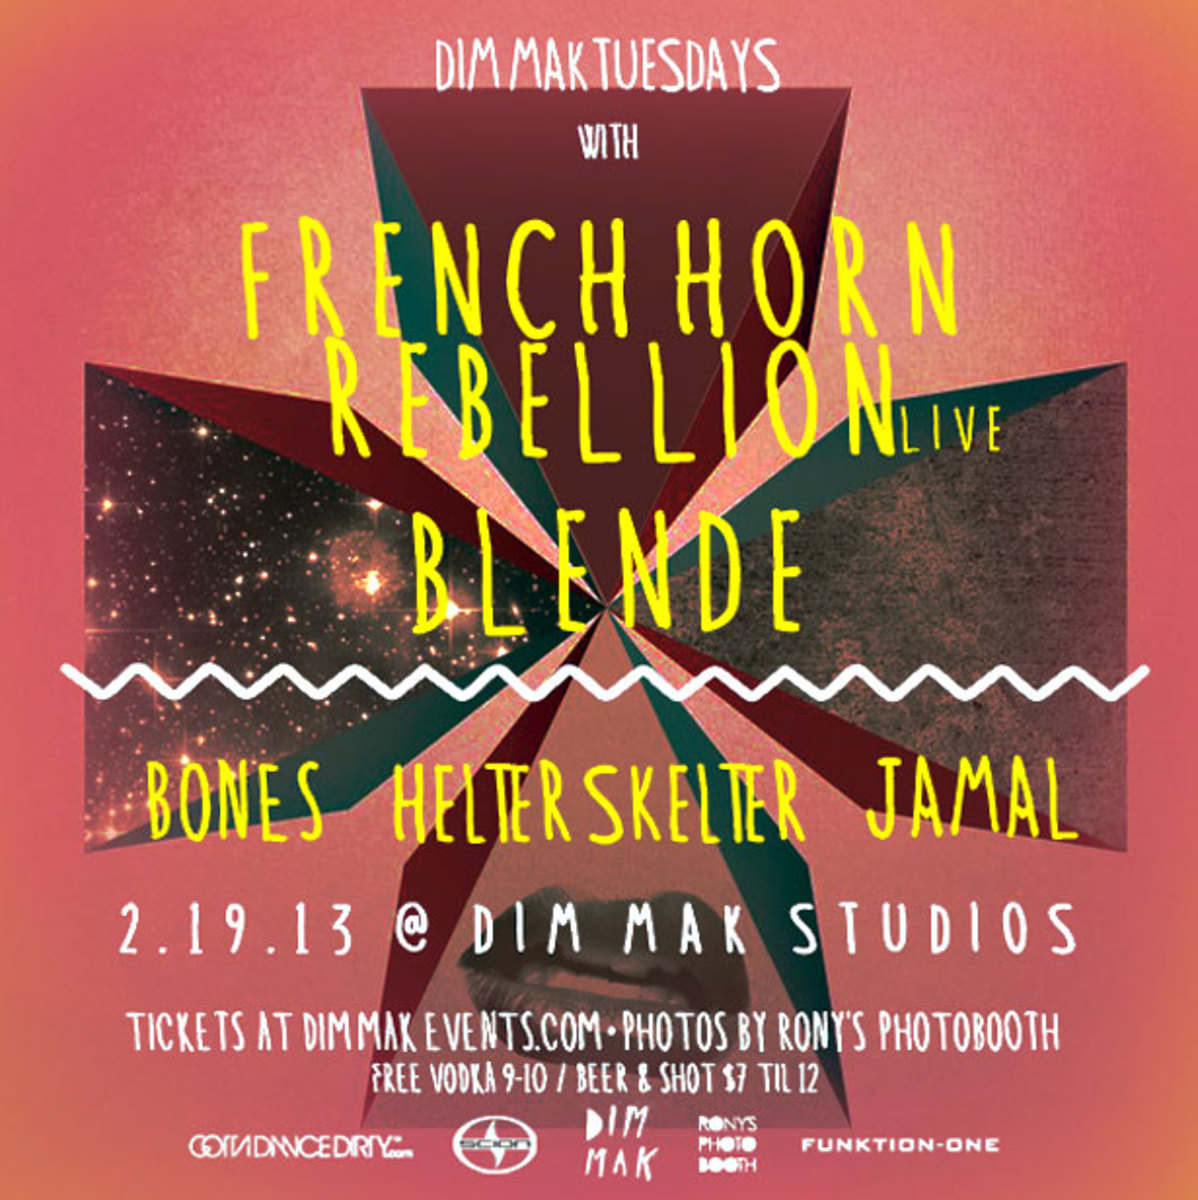 Los Angeles Event: French Horn Rebellion & Blende Tonight at Dim Mak Studios